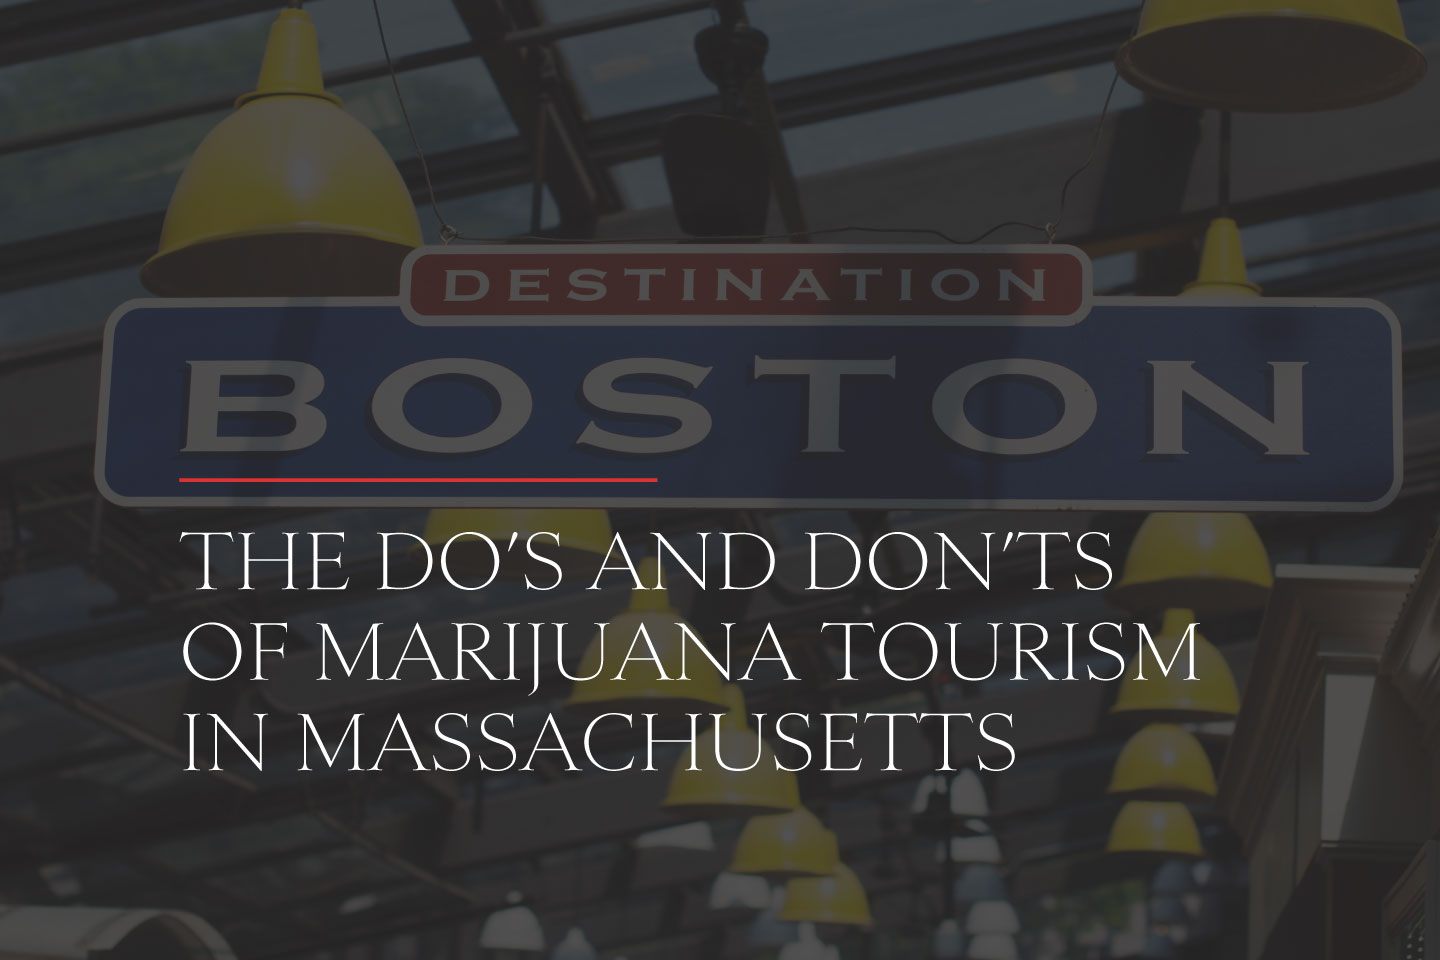 The Do's and Don'ts of Marijuana Tourism in Massachusetts